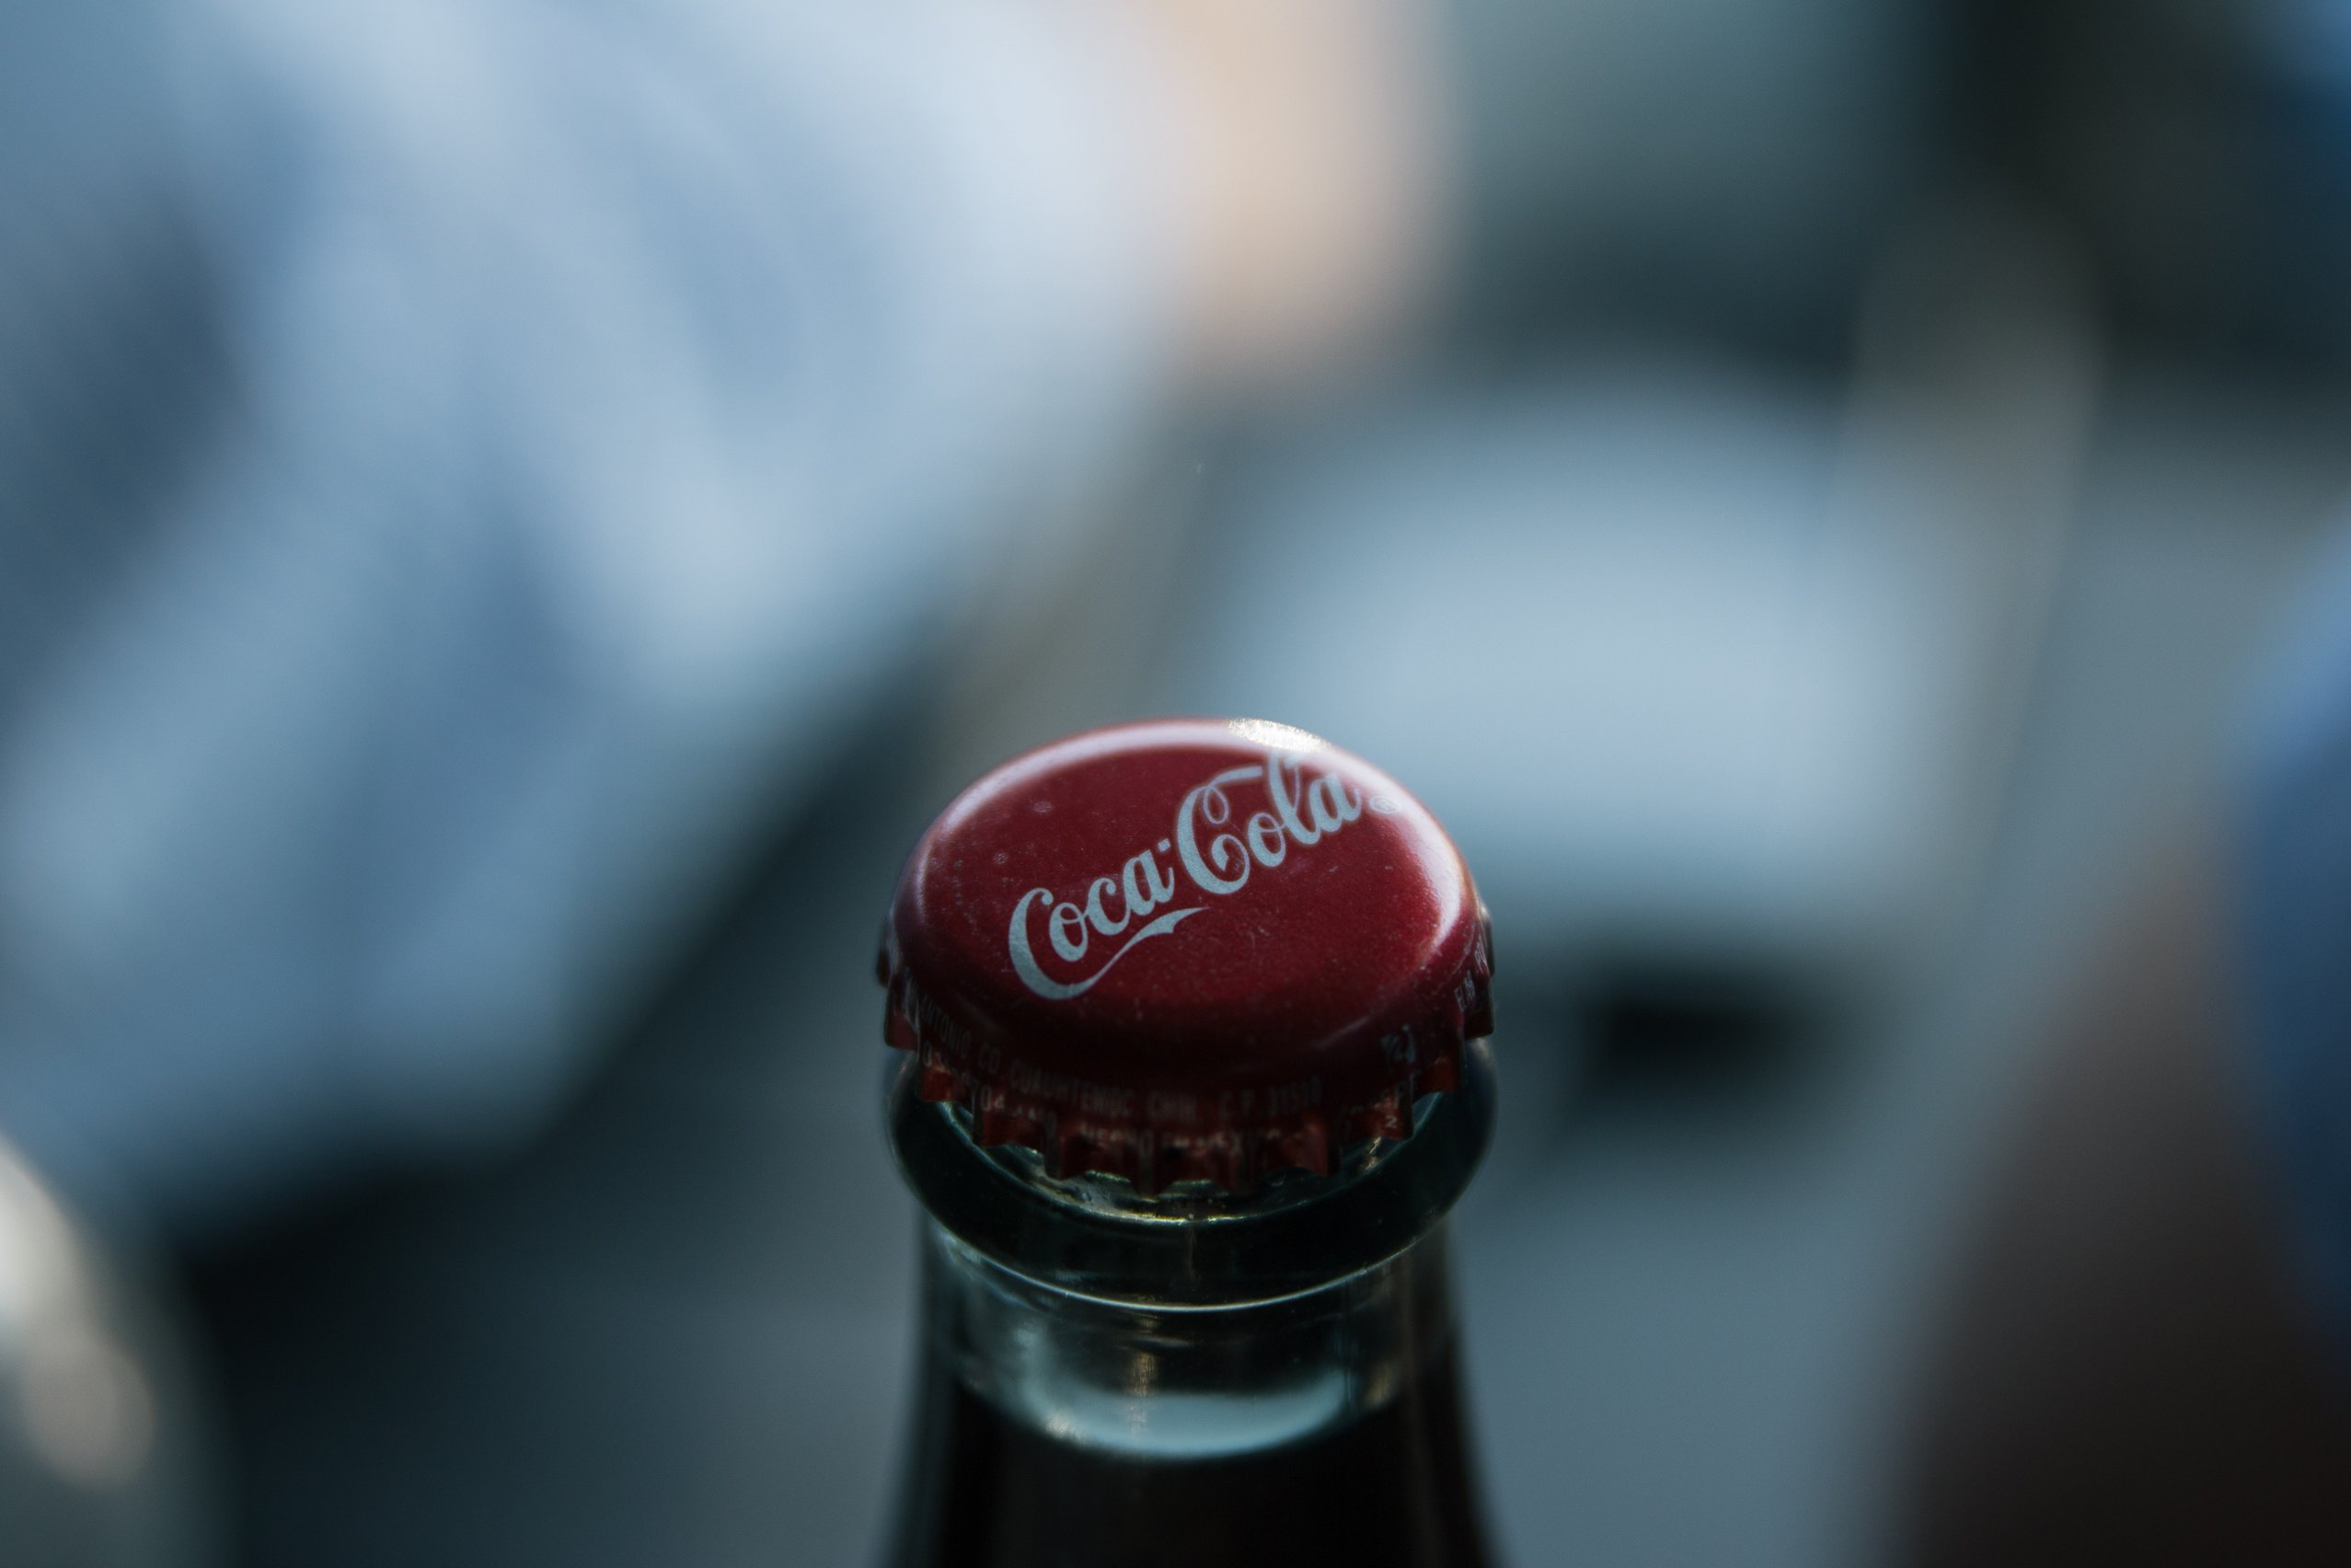 Image showing a Coca-Cola bottle cap, whose red colour is often referred to in e-commerce colour psychology.